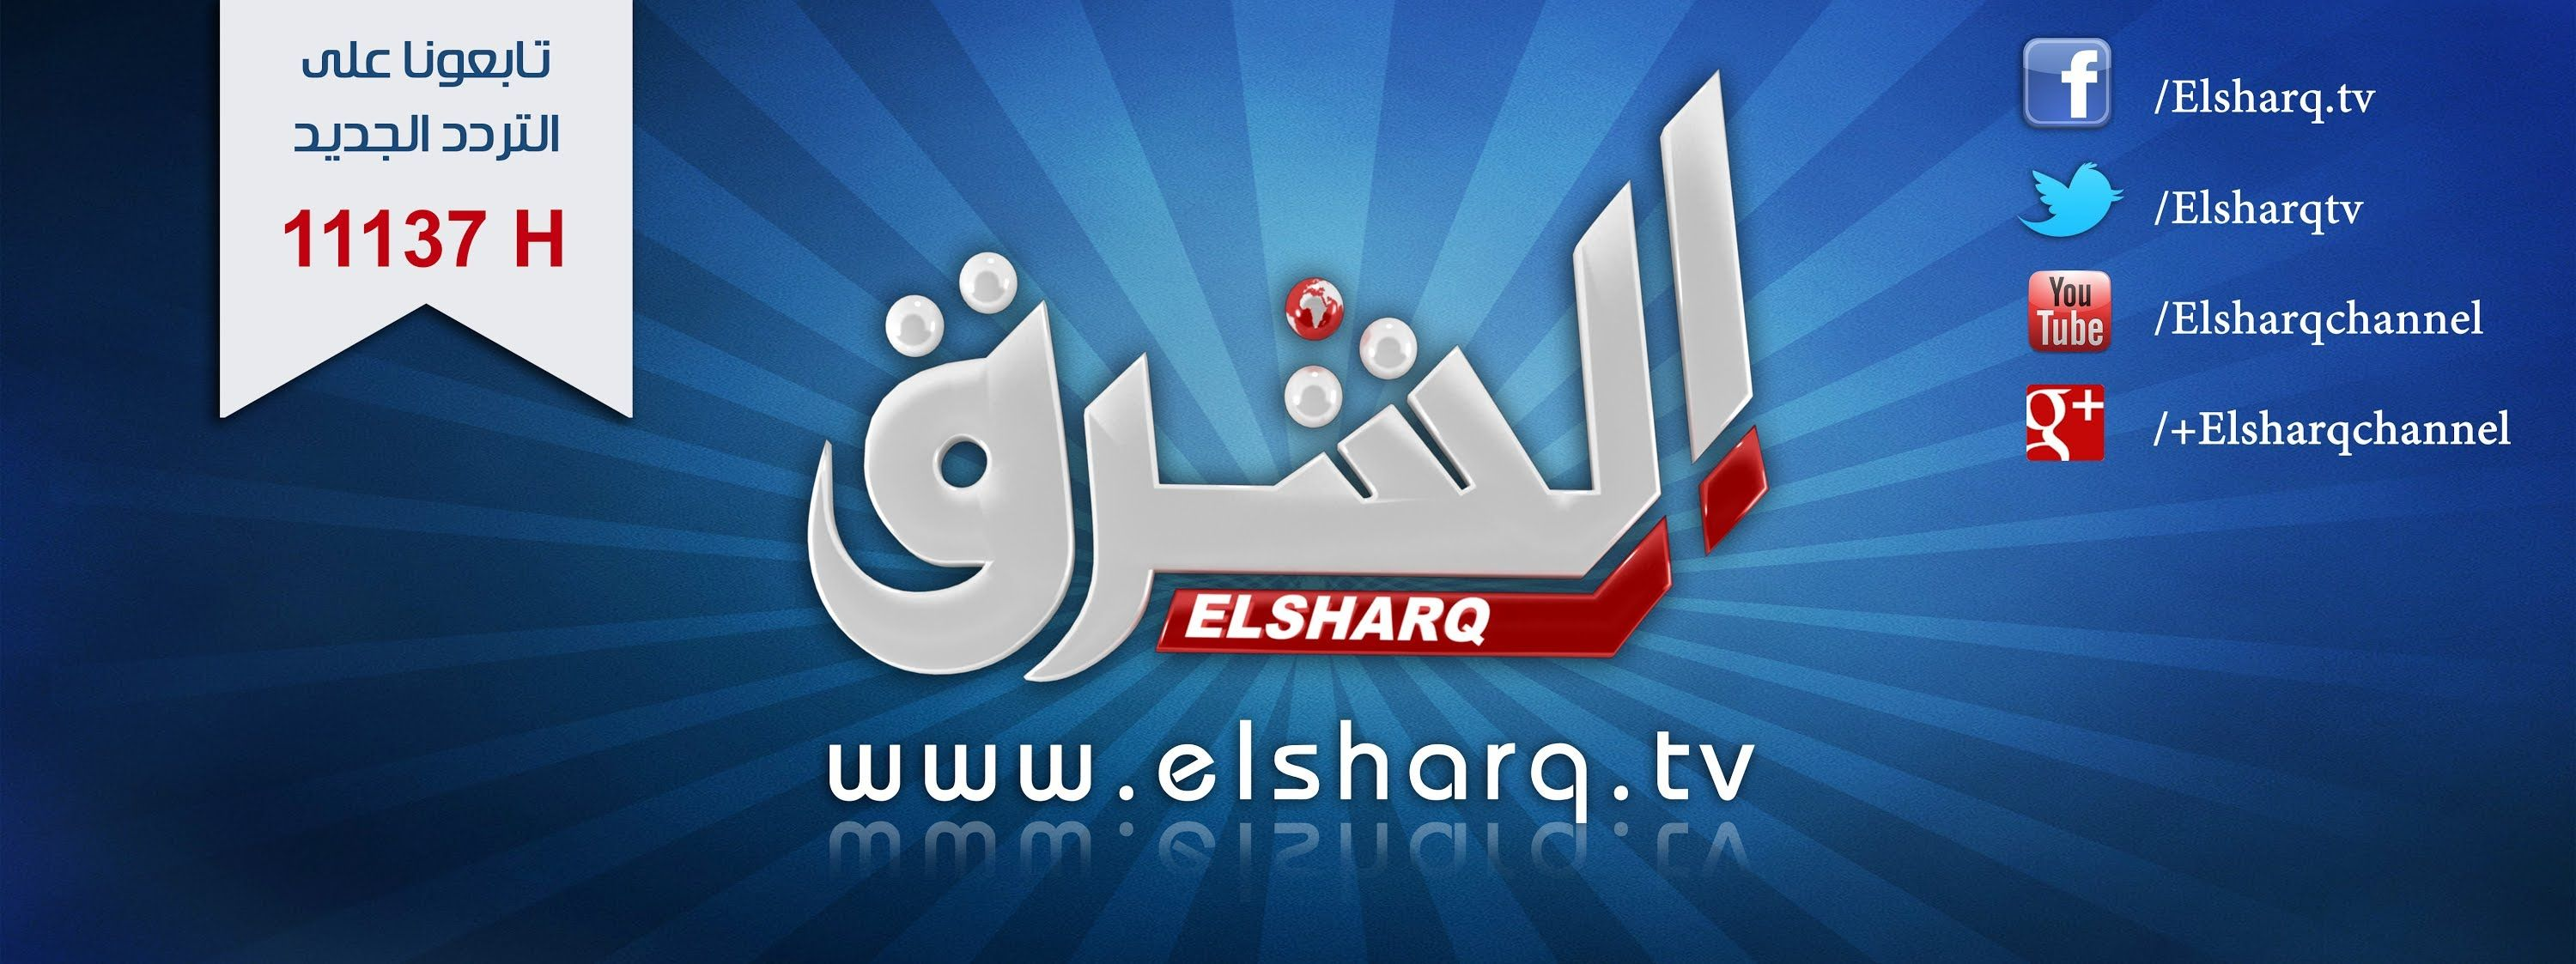 Al Sharq TV